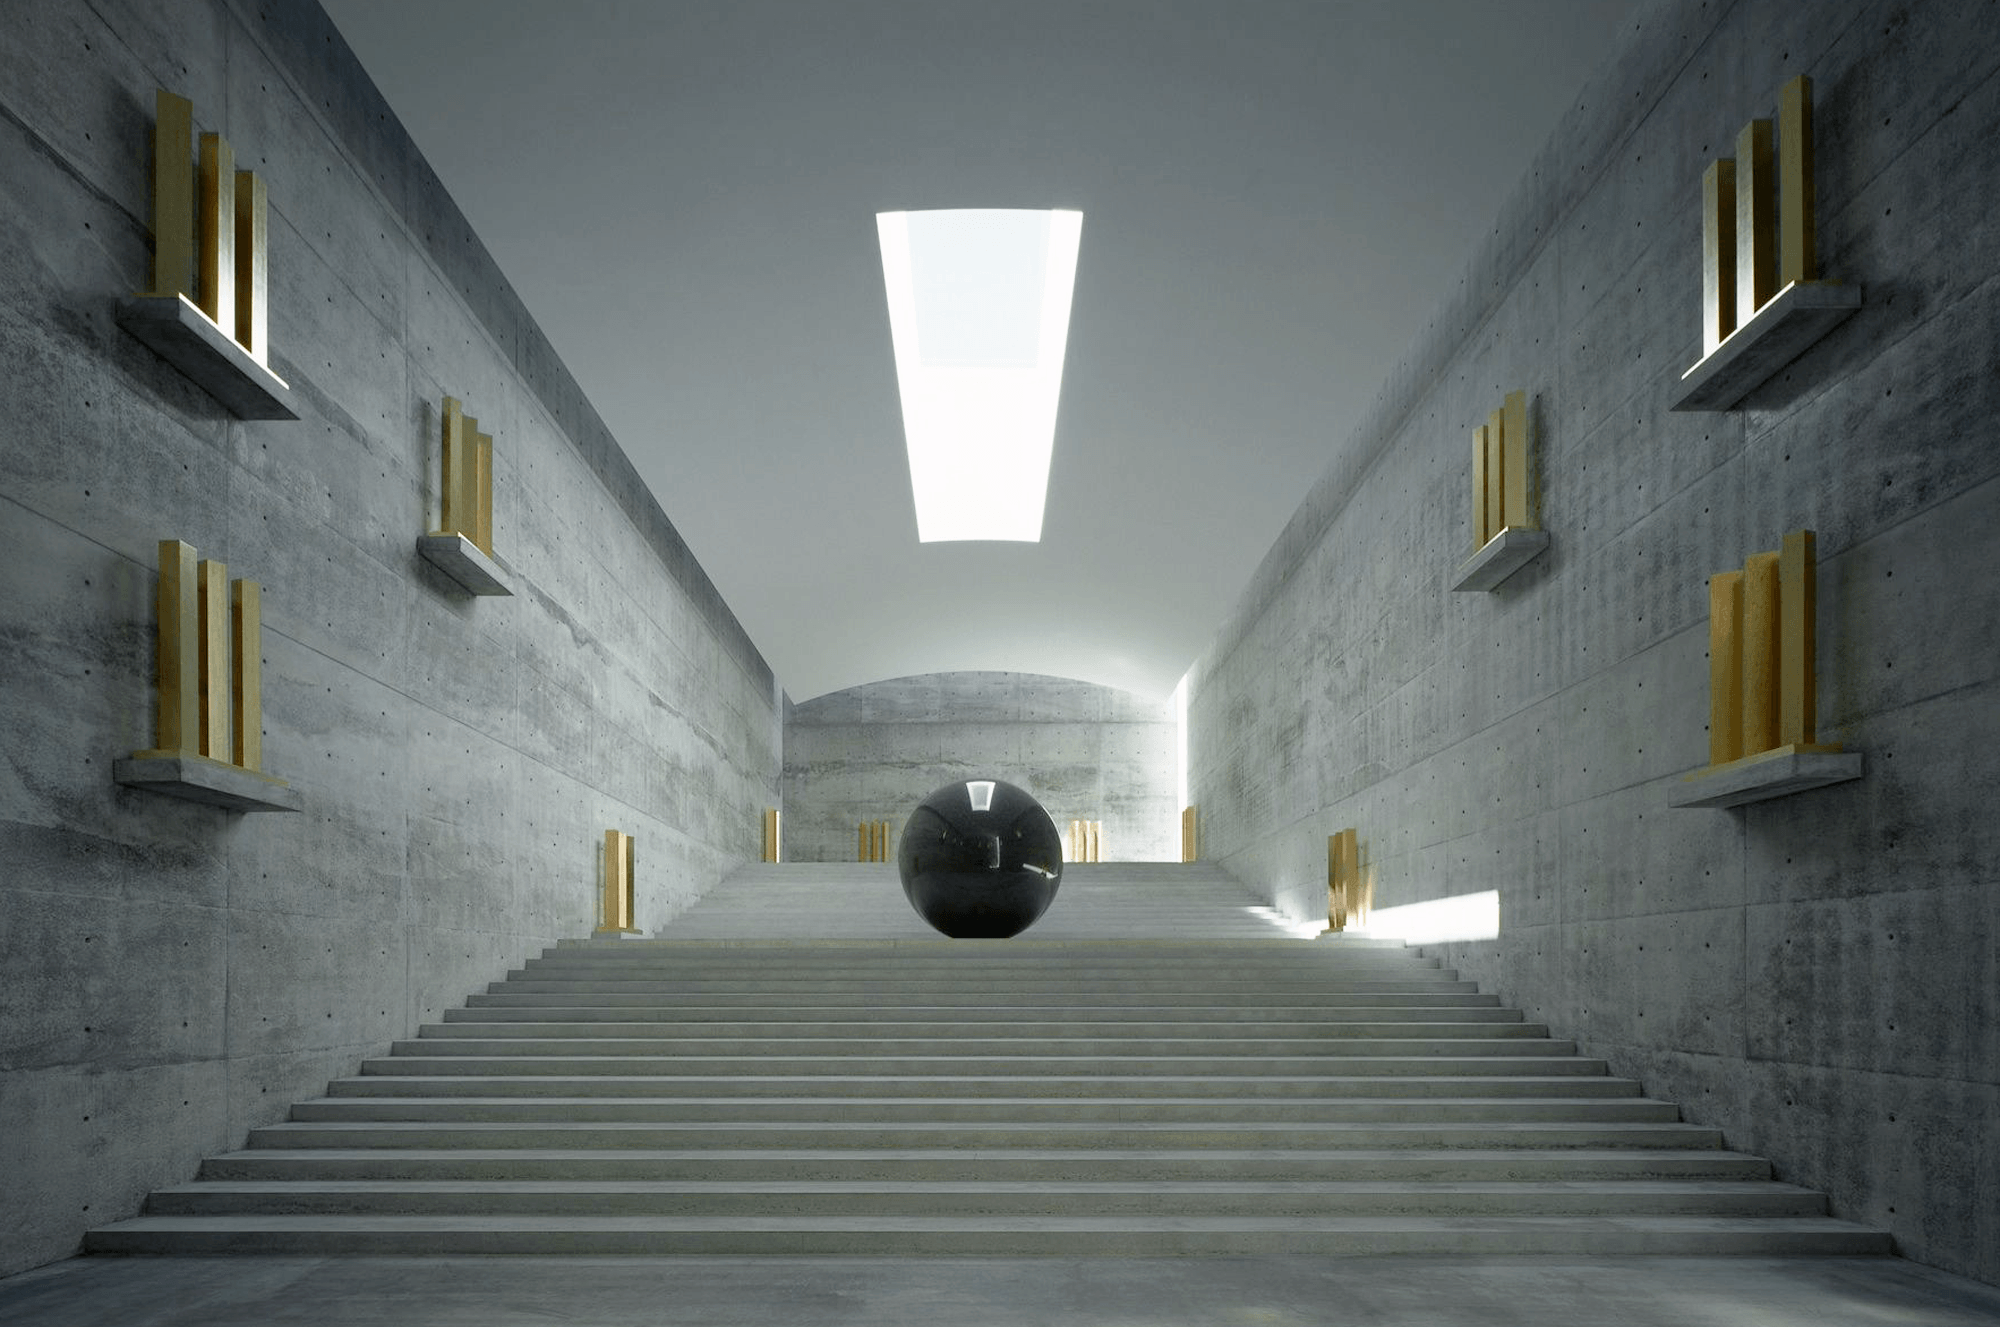 Walter De Maria The Visionary Artist Responsible For The Rise In Minimalist Art Ignant Chichu Art Museum Tadao Ando Art Museums Interior